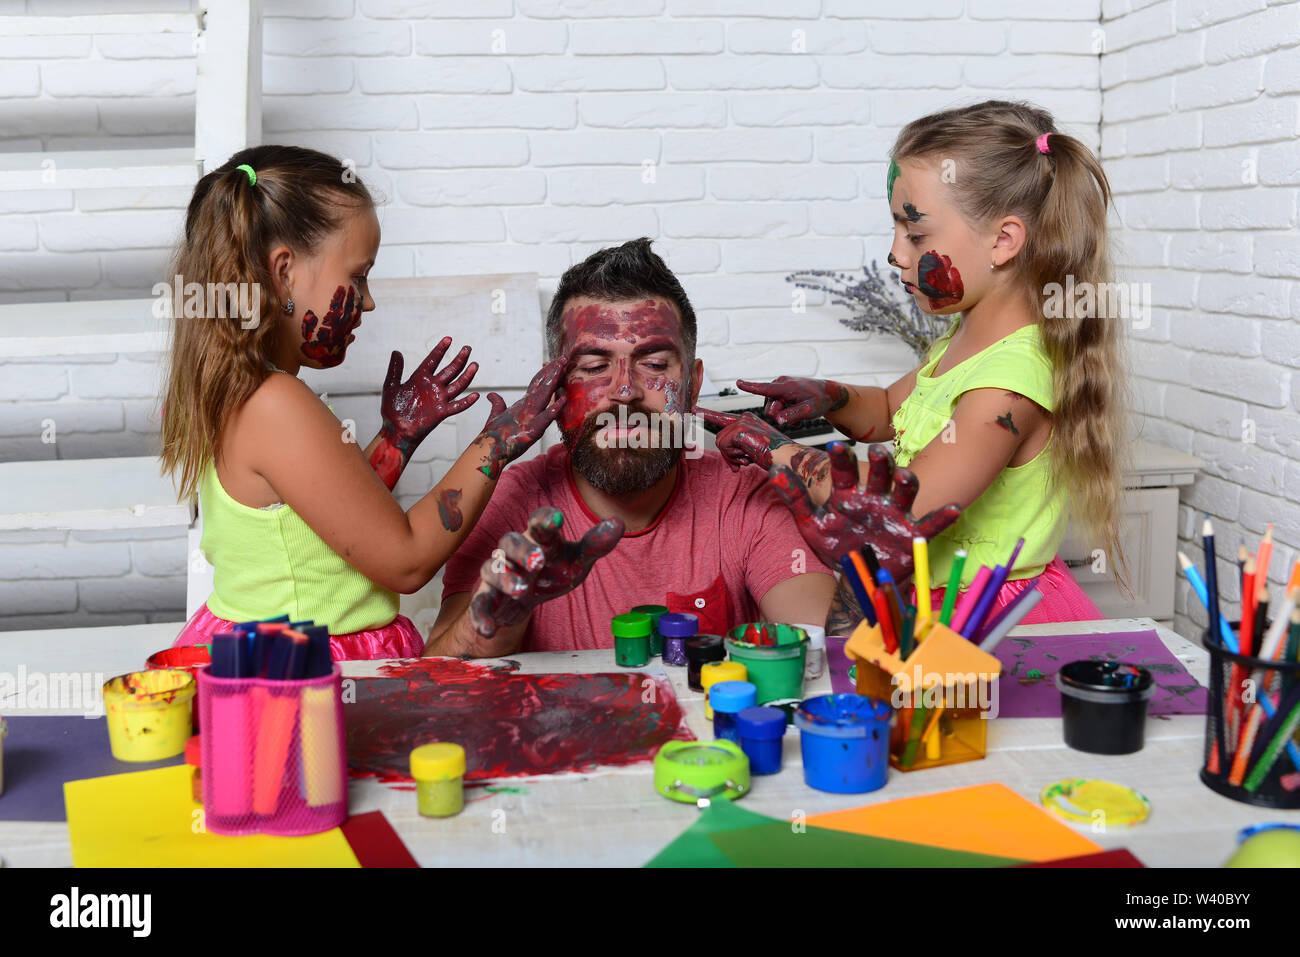 Daughters And Dad With Painted Hands Body Art And Painting Girls Drawing On Man Face Skin With Colorful Paints Fathers Day And Family Concept Crea Stock Photo Alamy